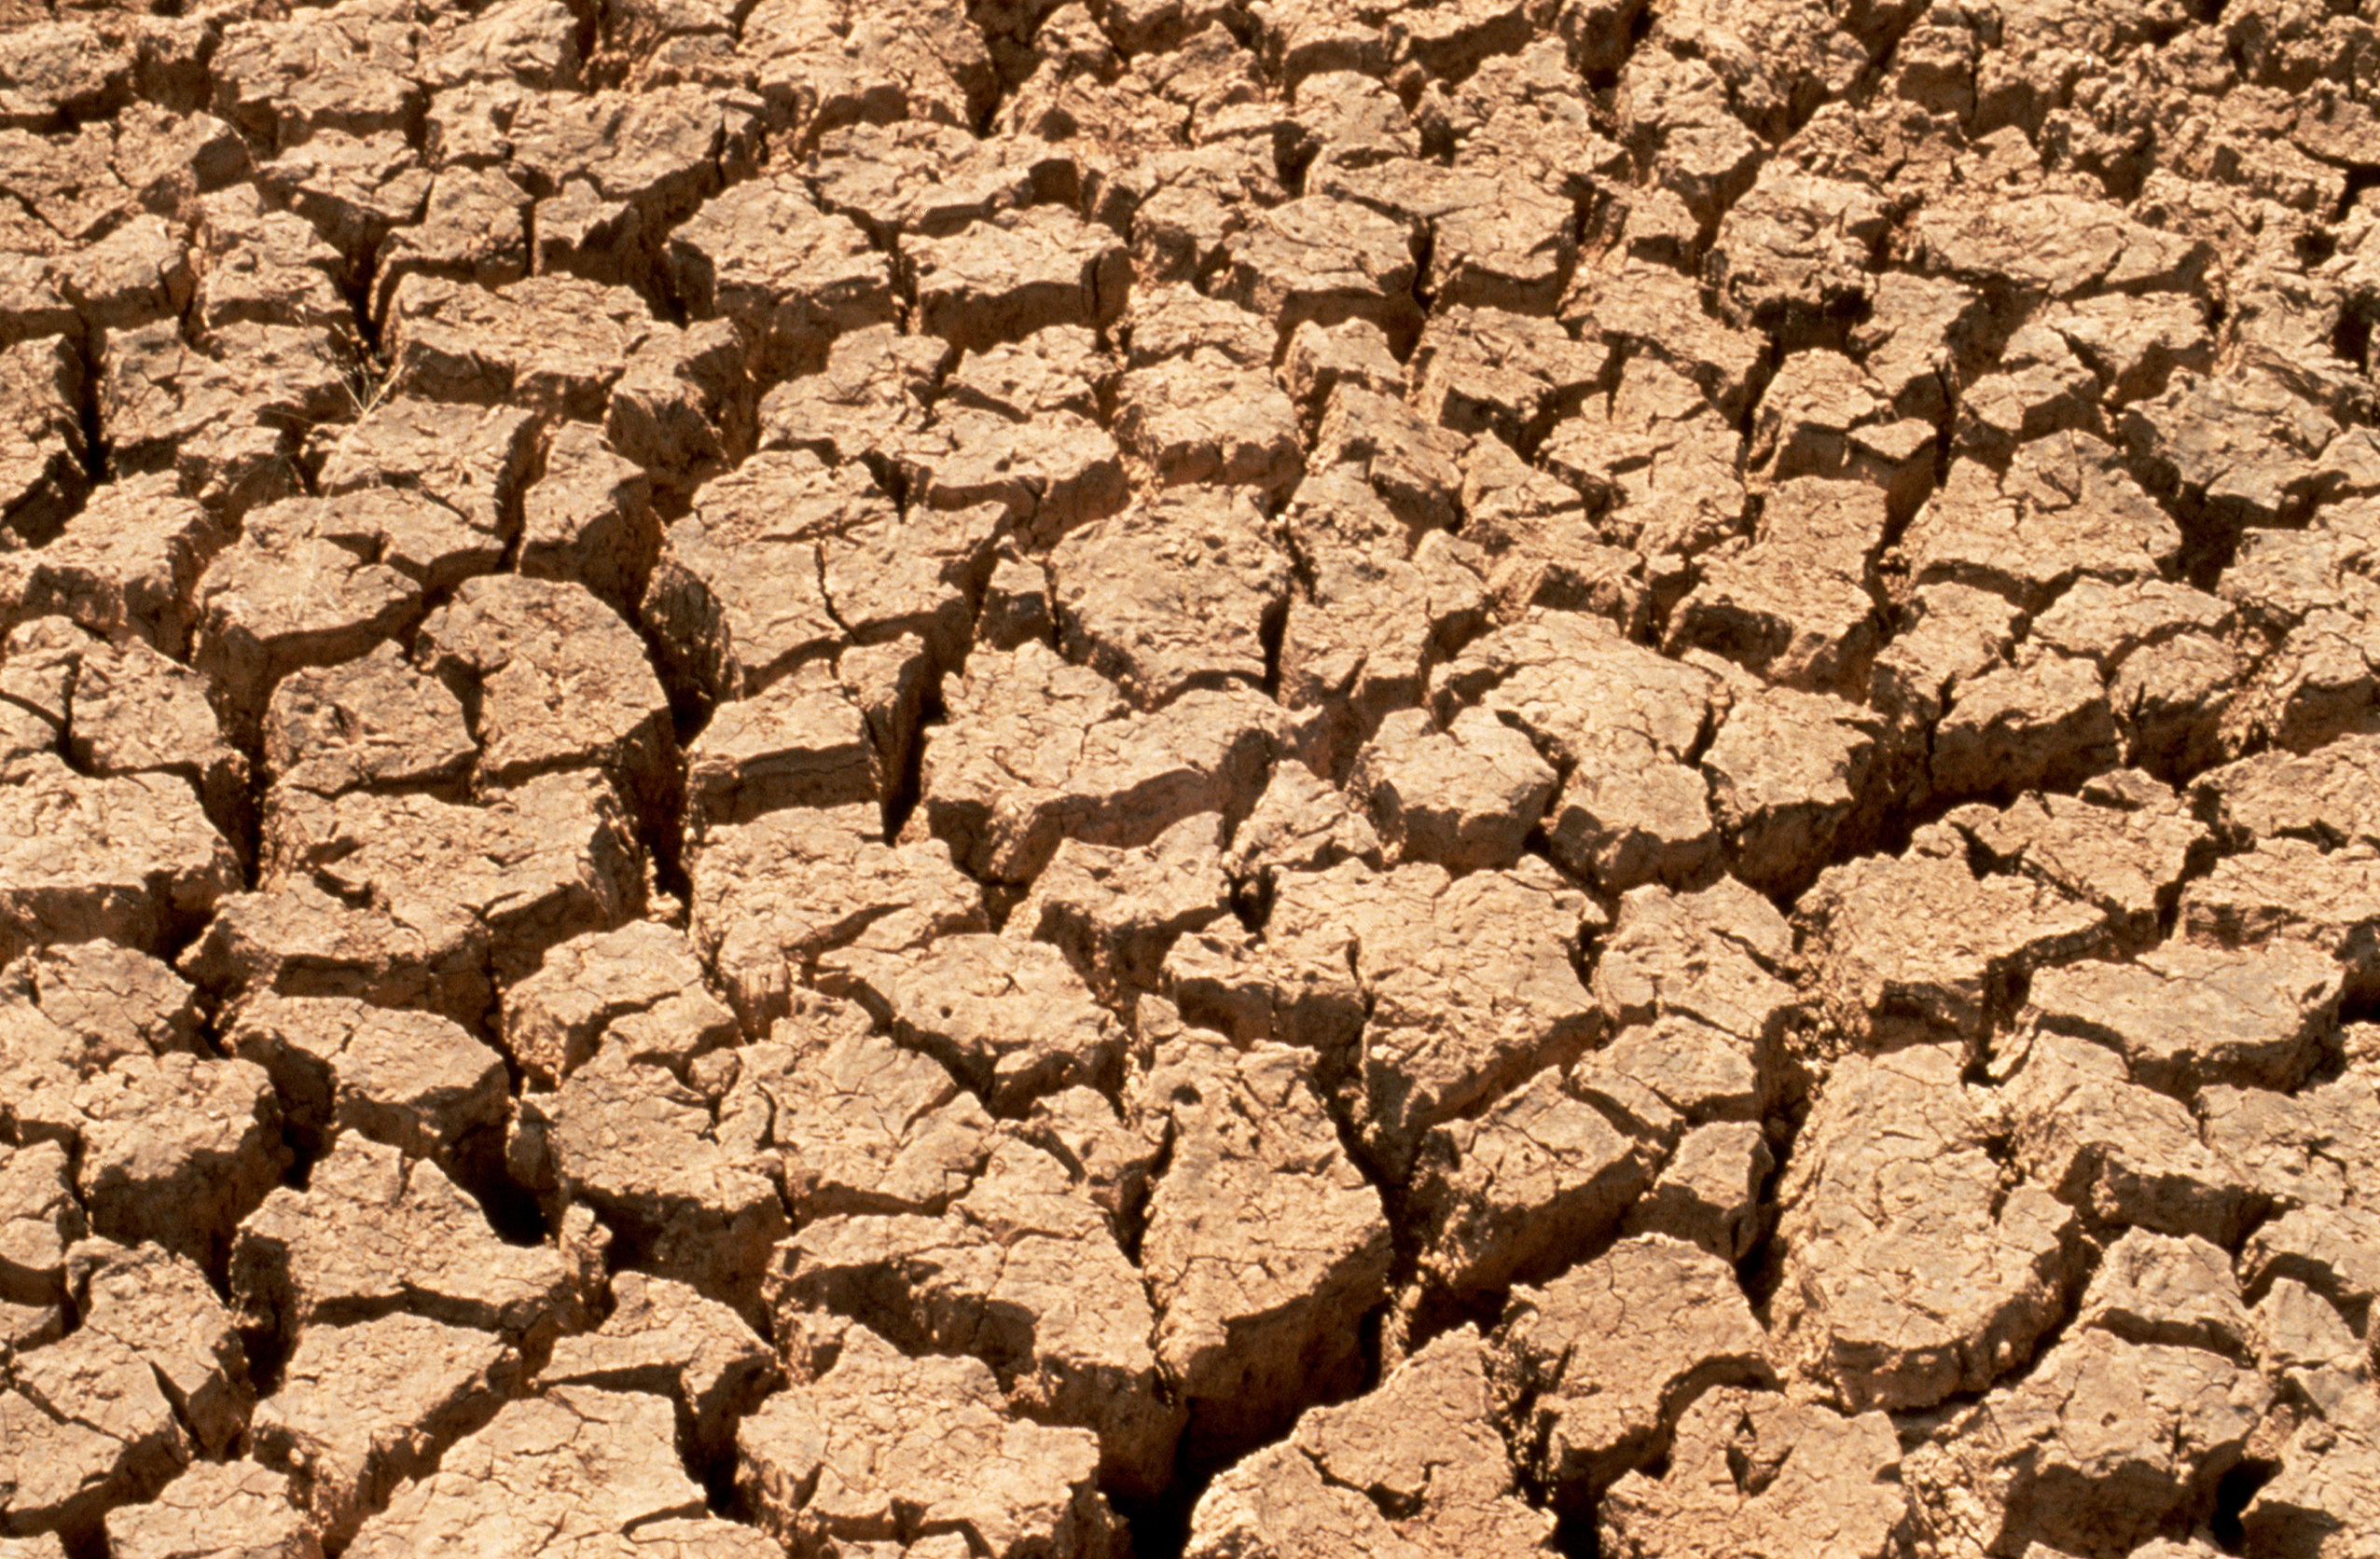 Drought on Soil